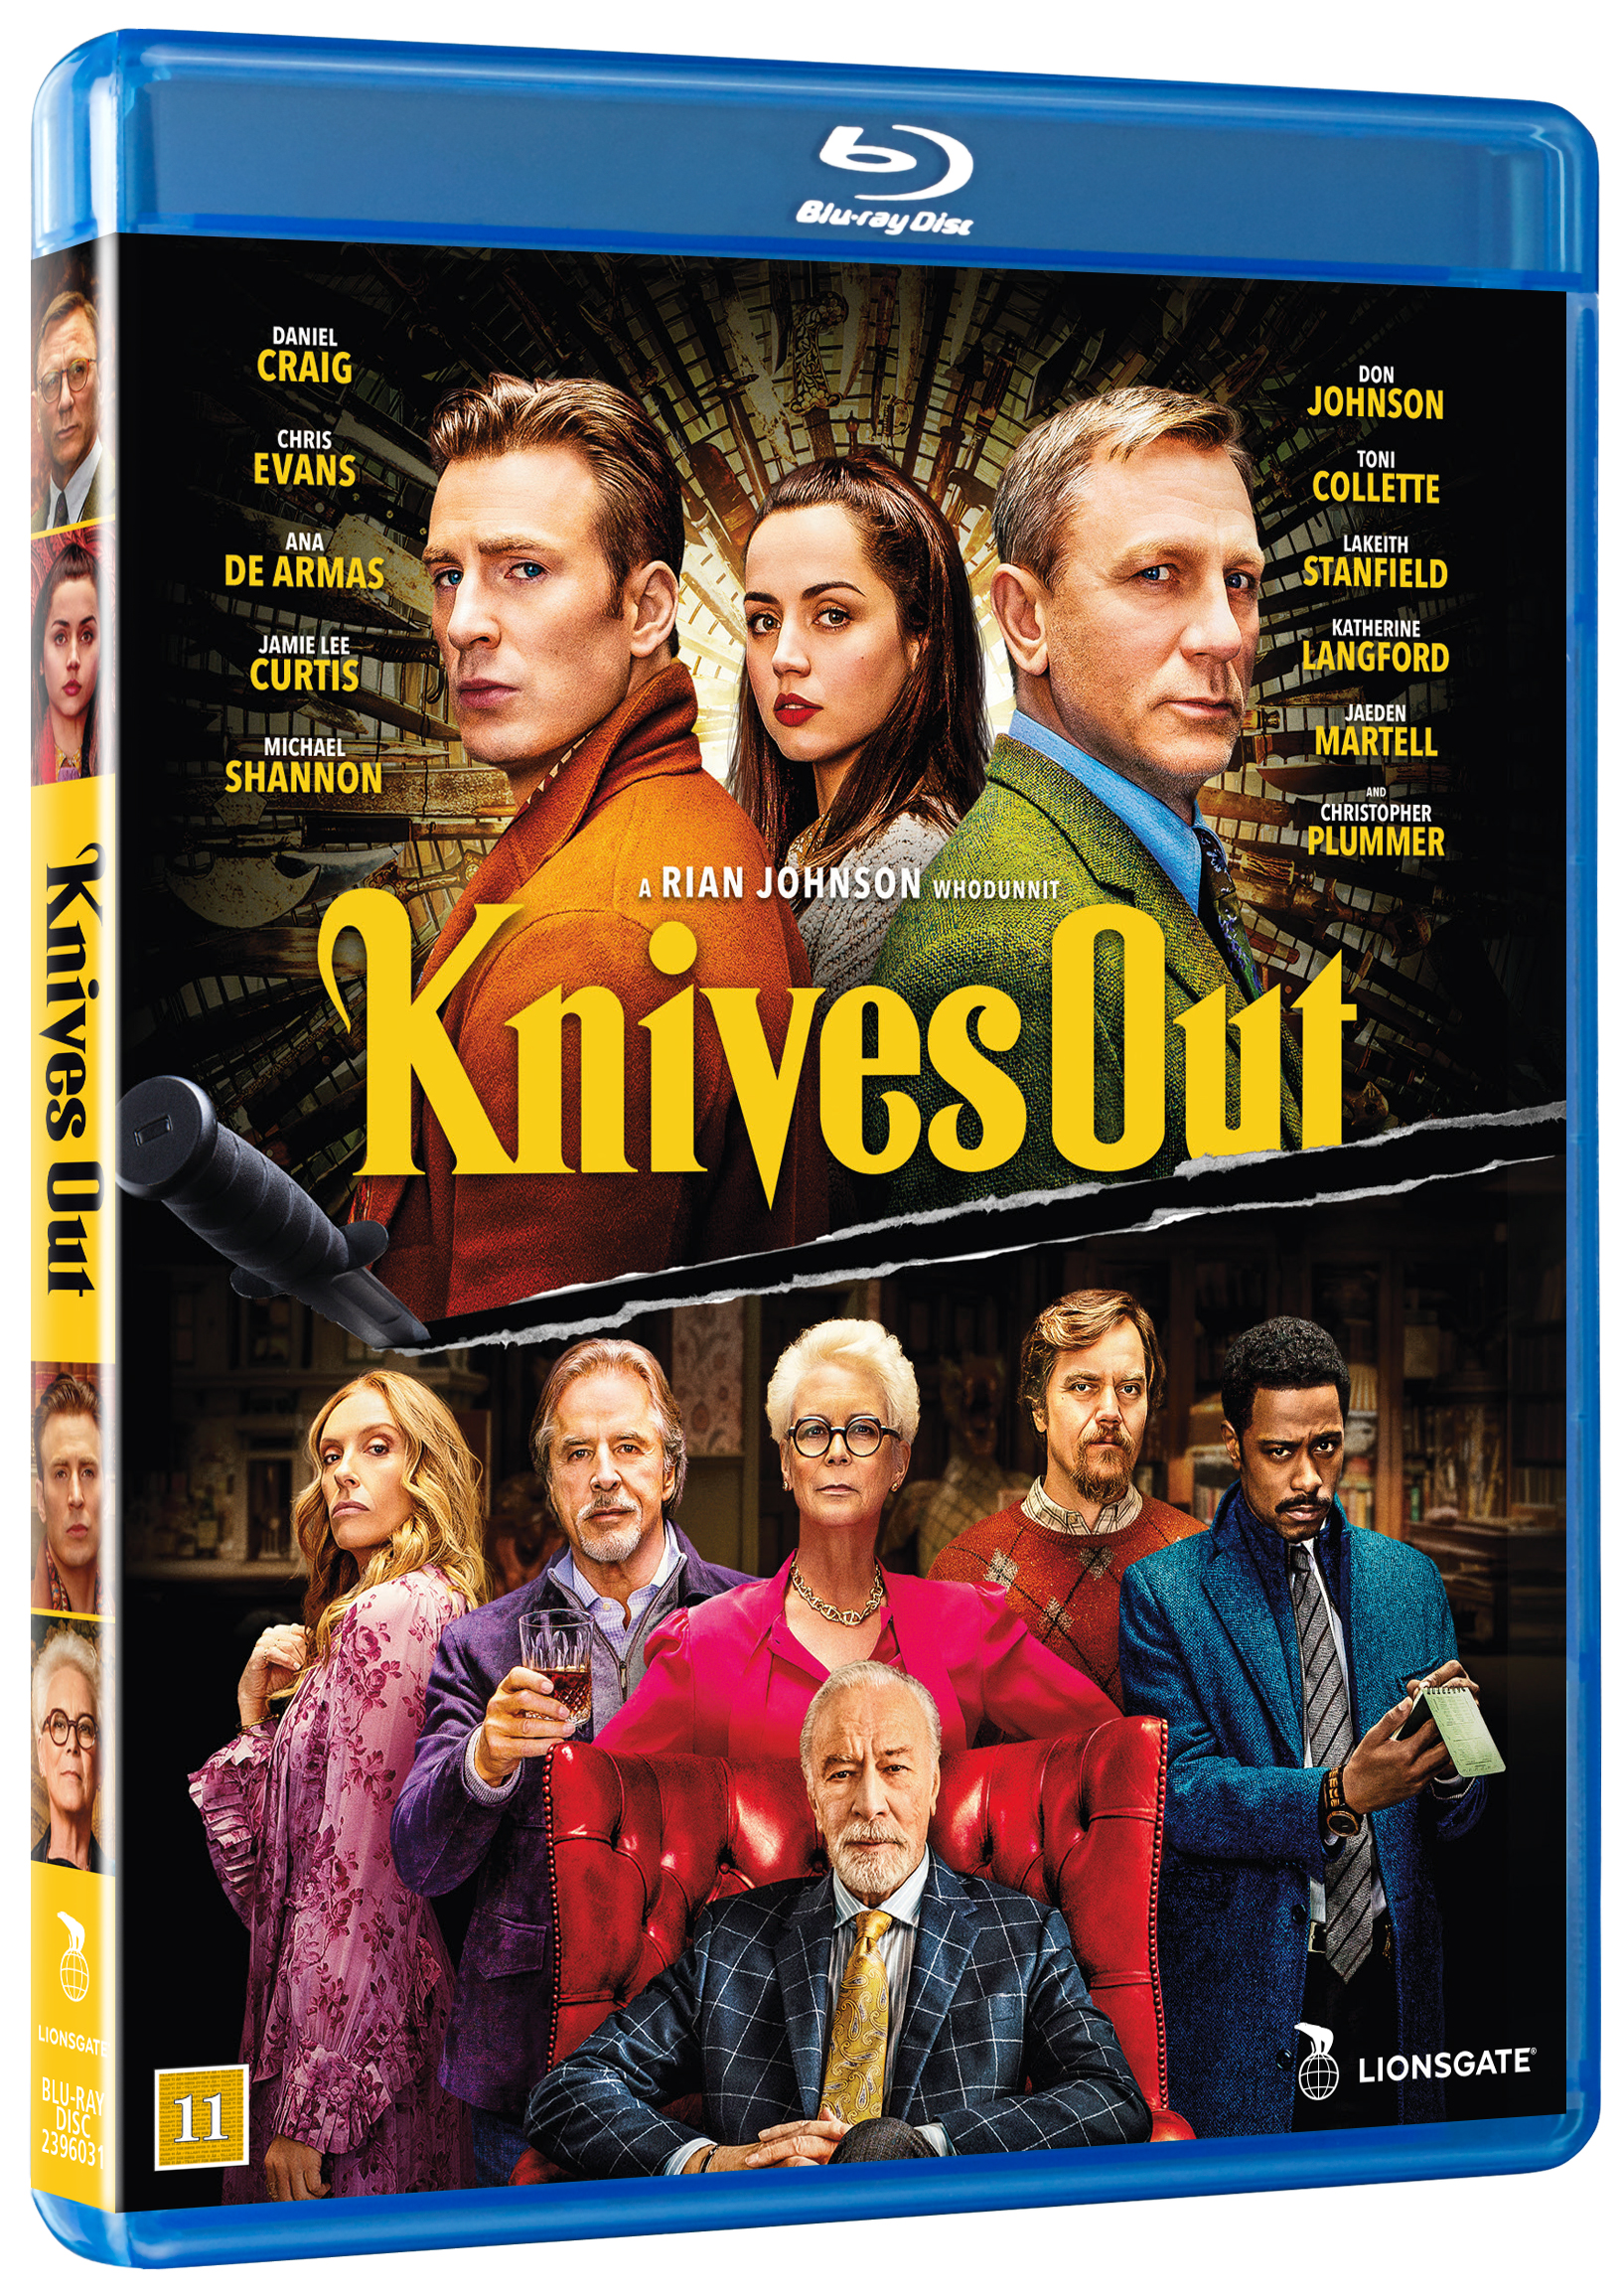 Knives out -  - Film -  - 5708758725125 - 6/4-2020